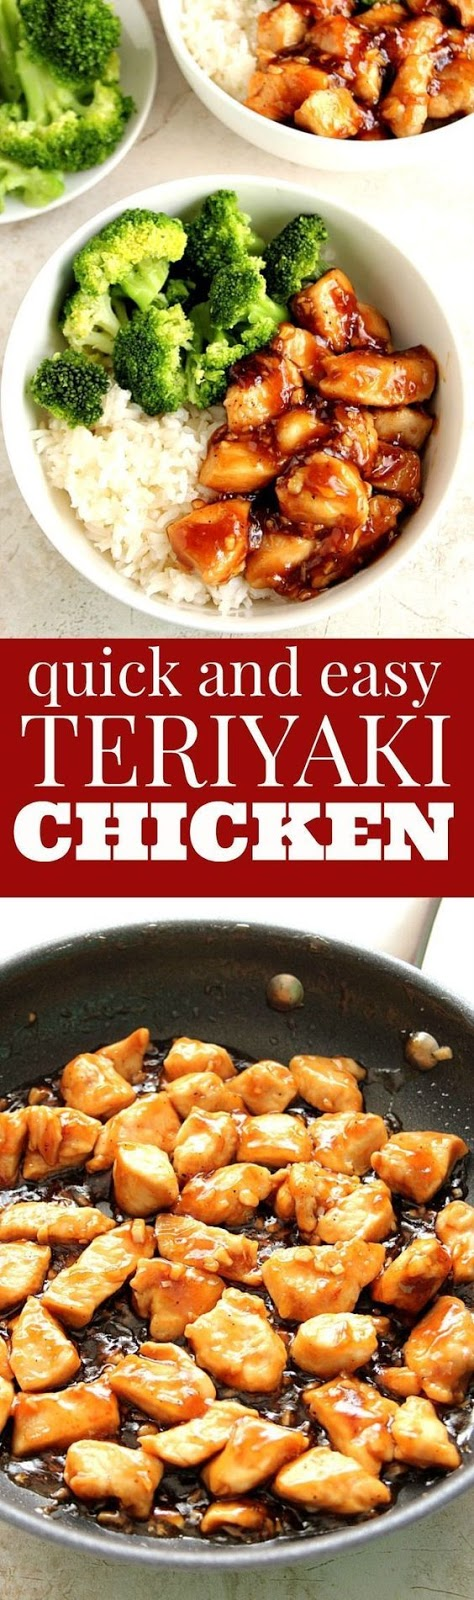 Quick Teriyaki Chicken Rice Bowls Recipe